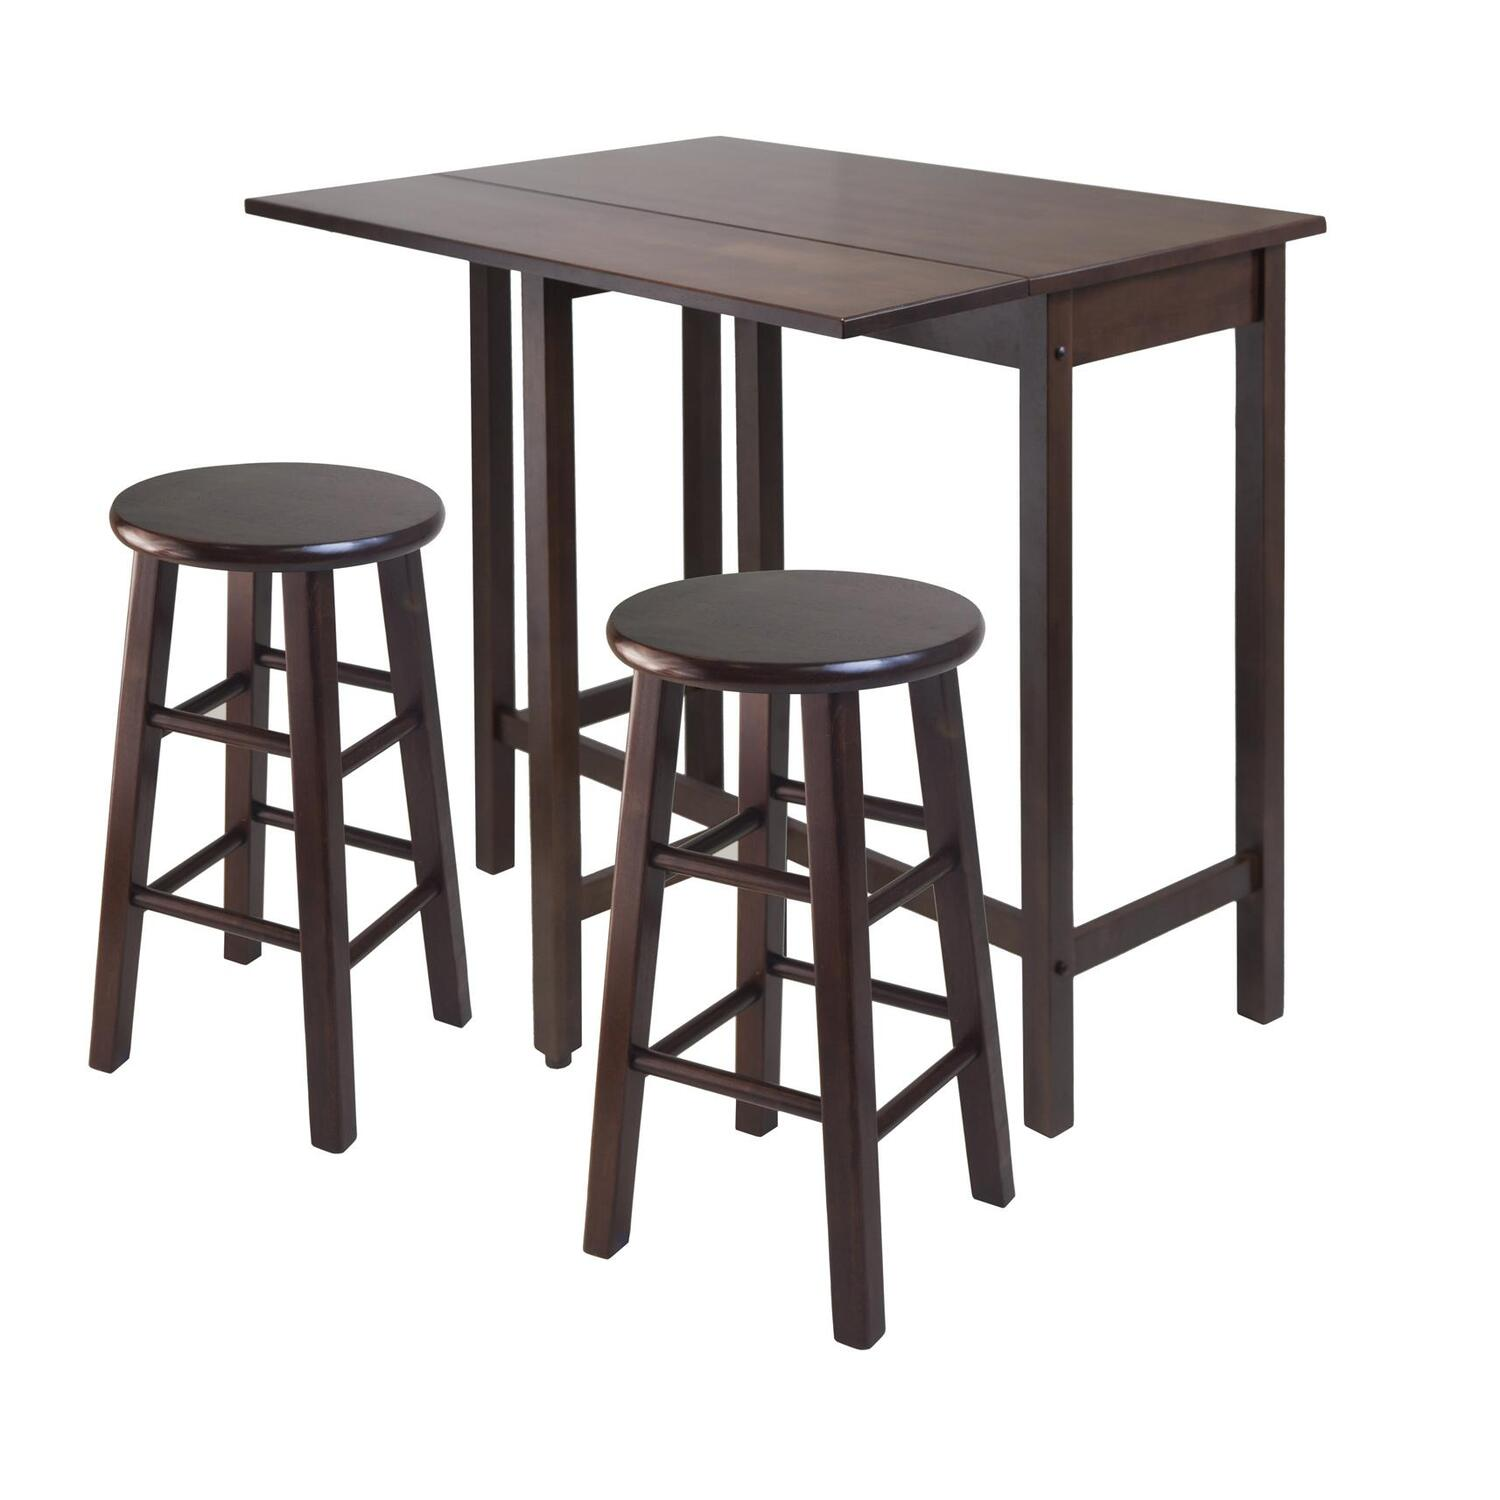 Lynnwood drop leaf island table with 2 square legs stool for Furniture in lynnwood